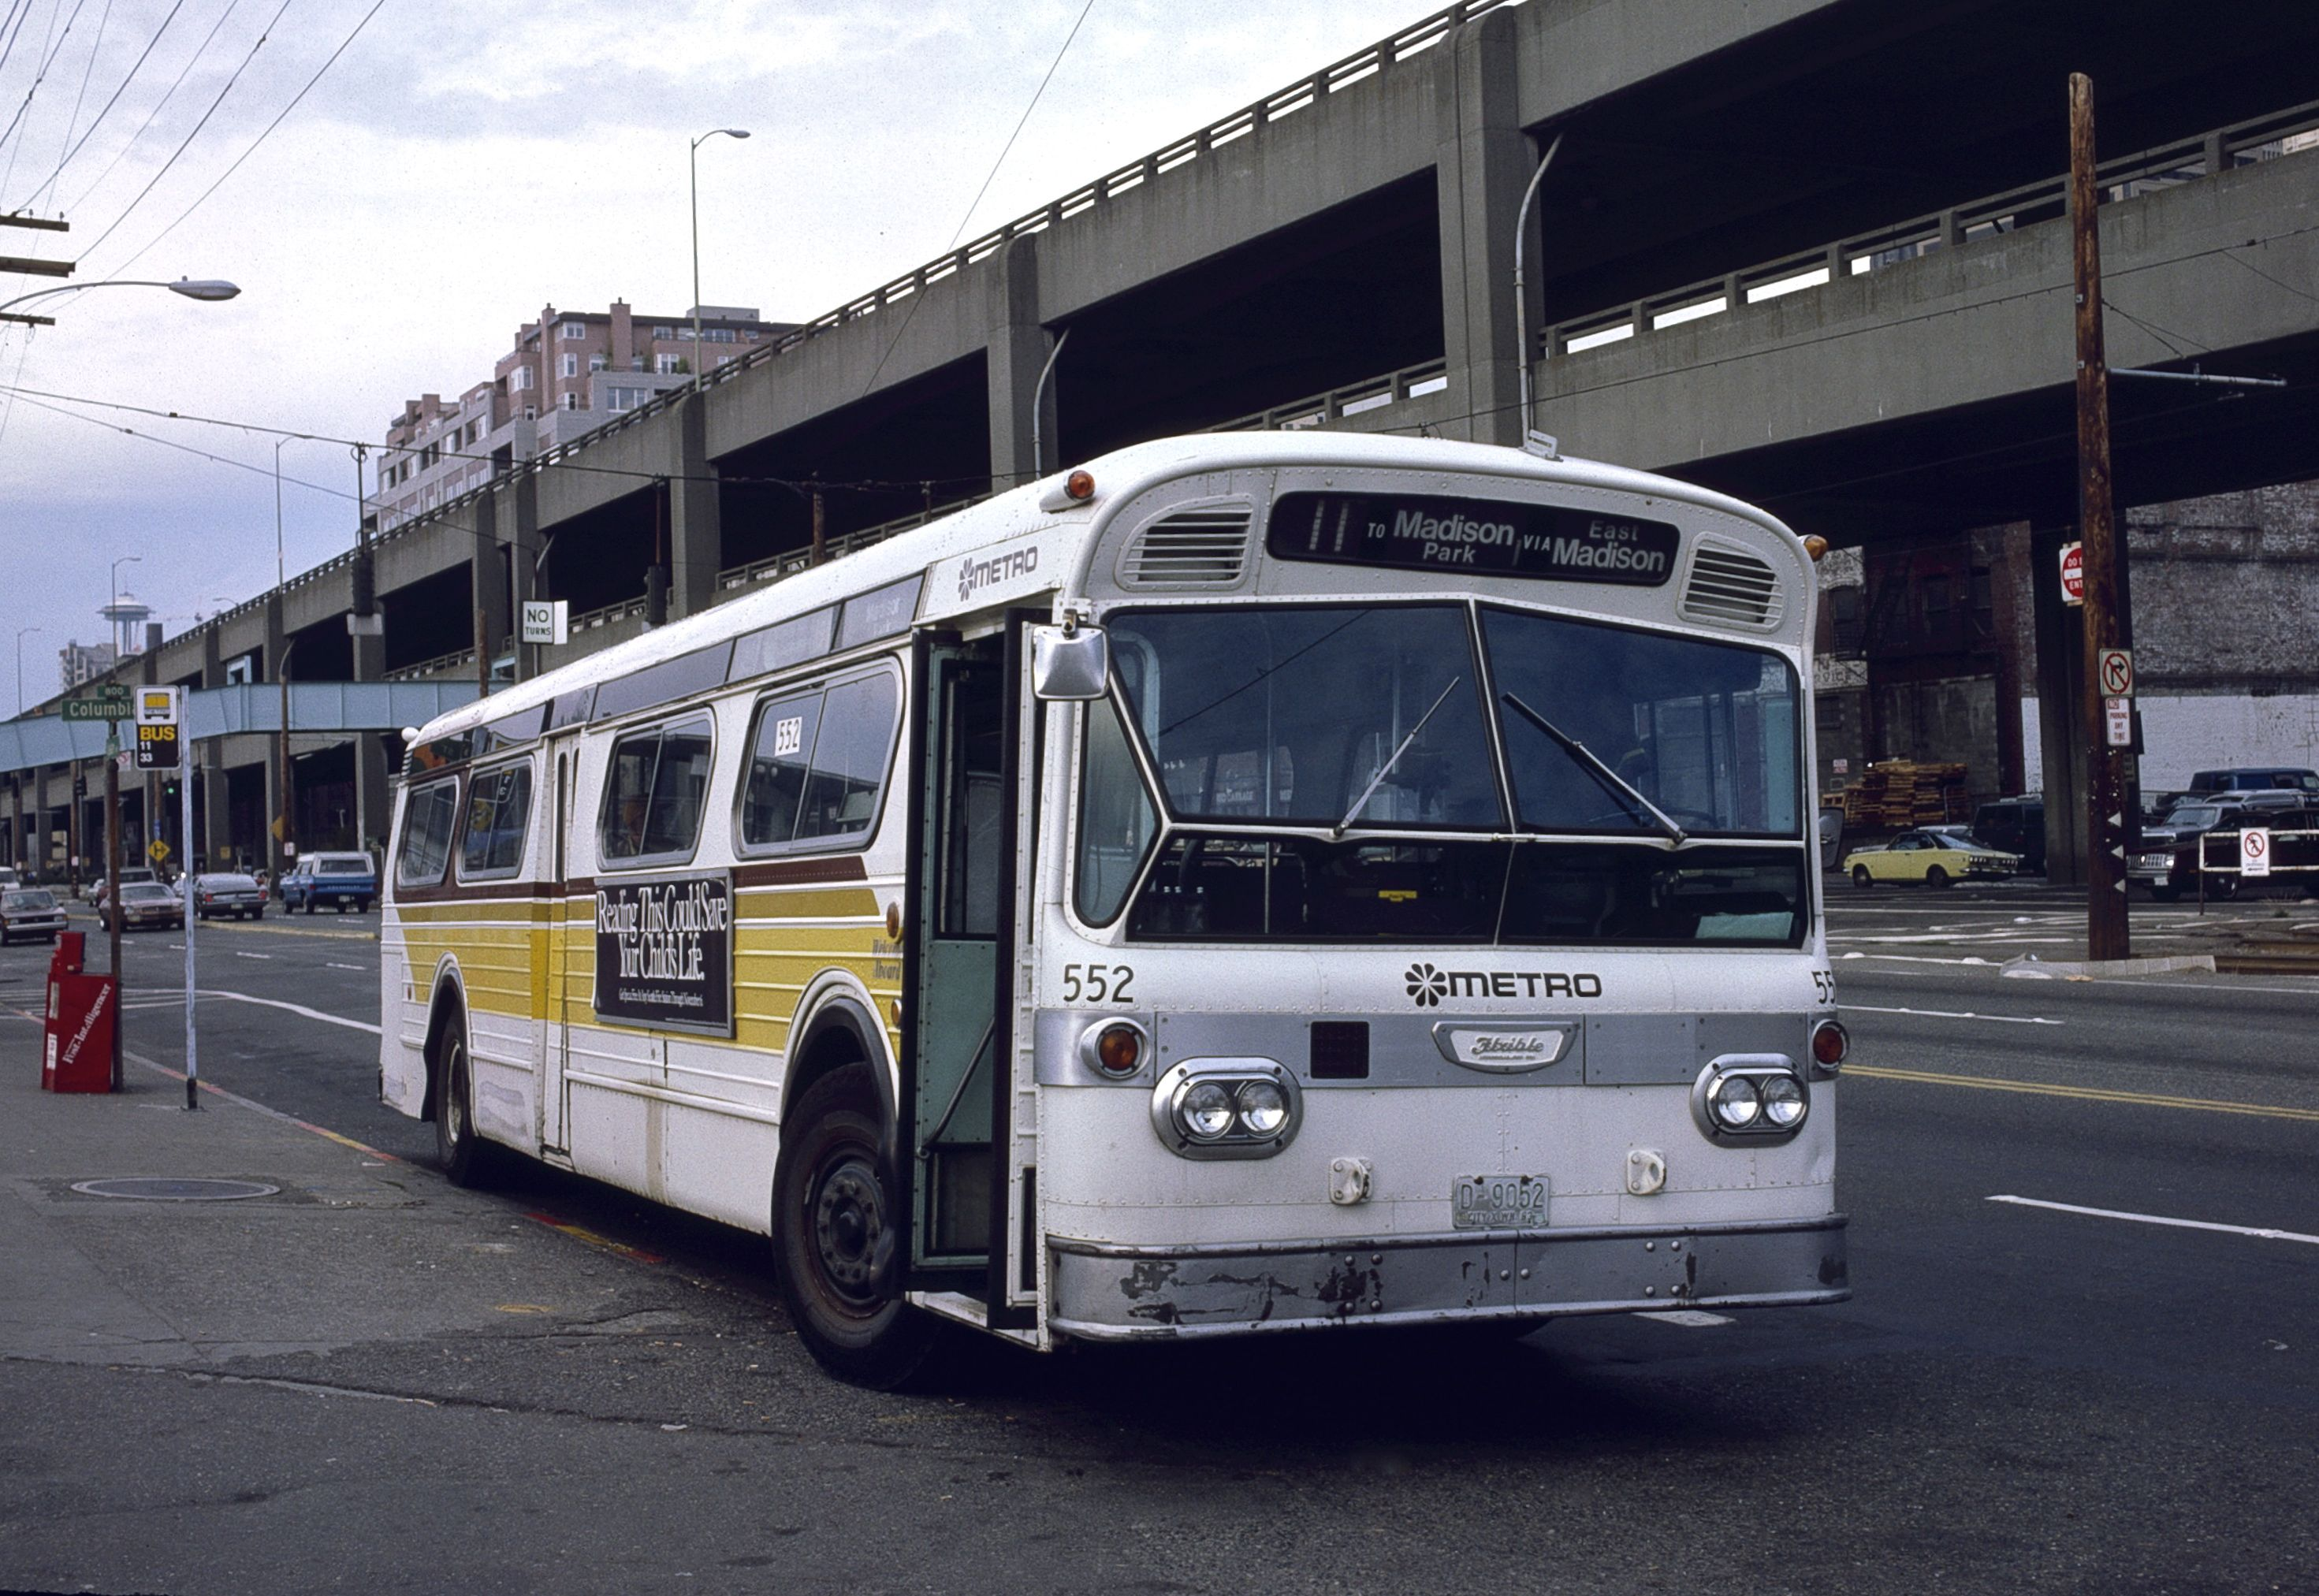 Seattle_Flxible_bus_552_on_Alaskan_Way_i